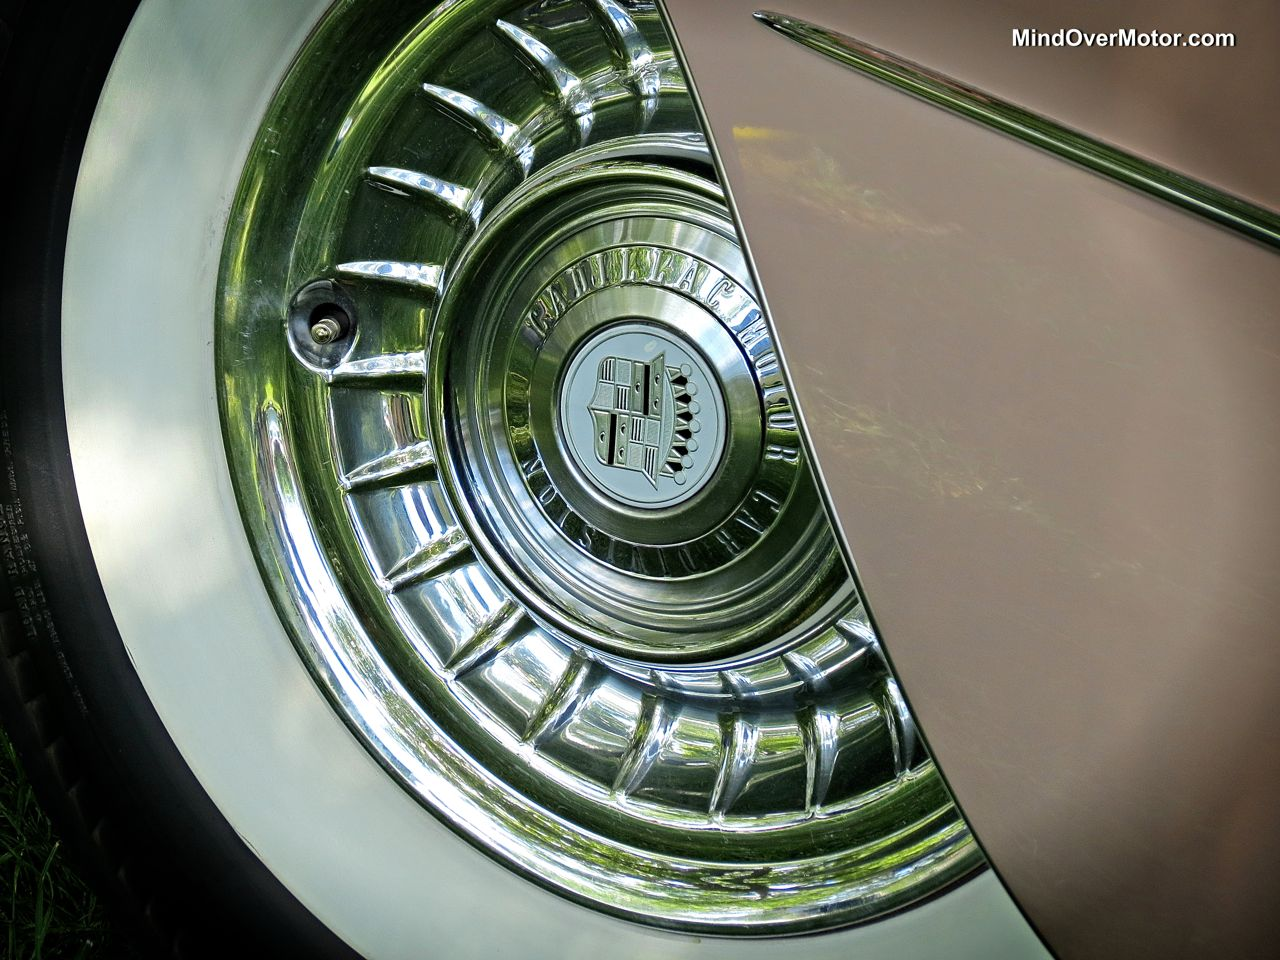 1959 Cadillac Coupe De Ville Wheel